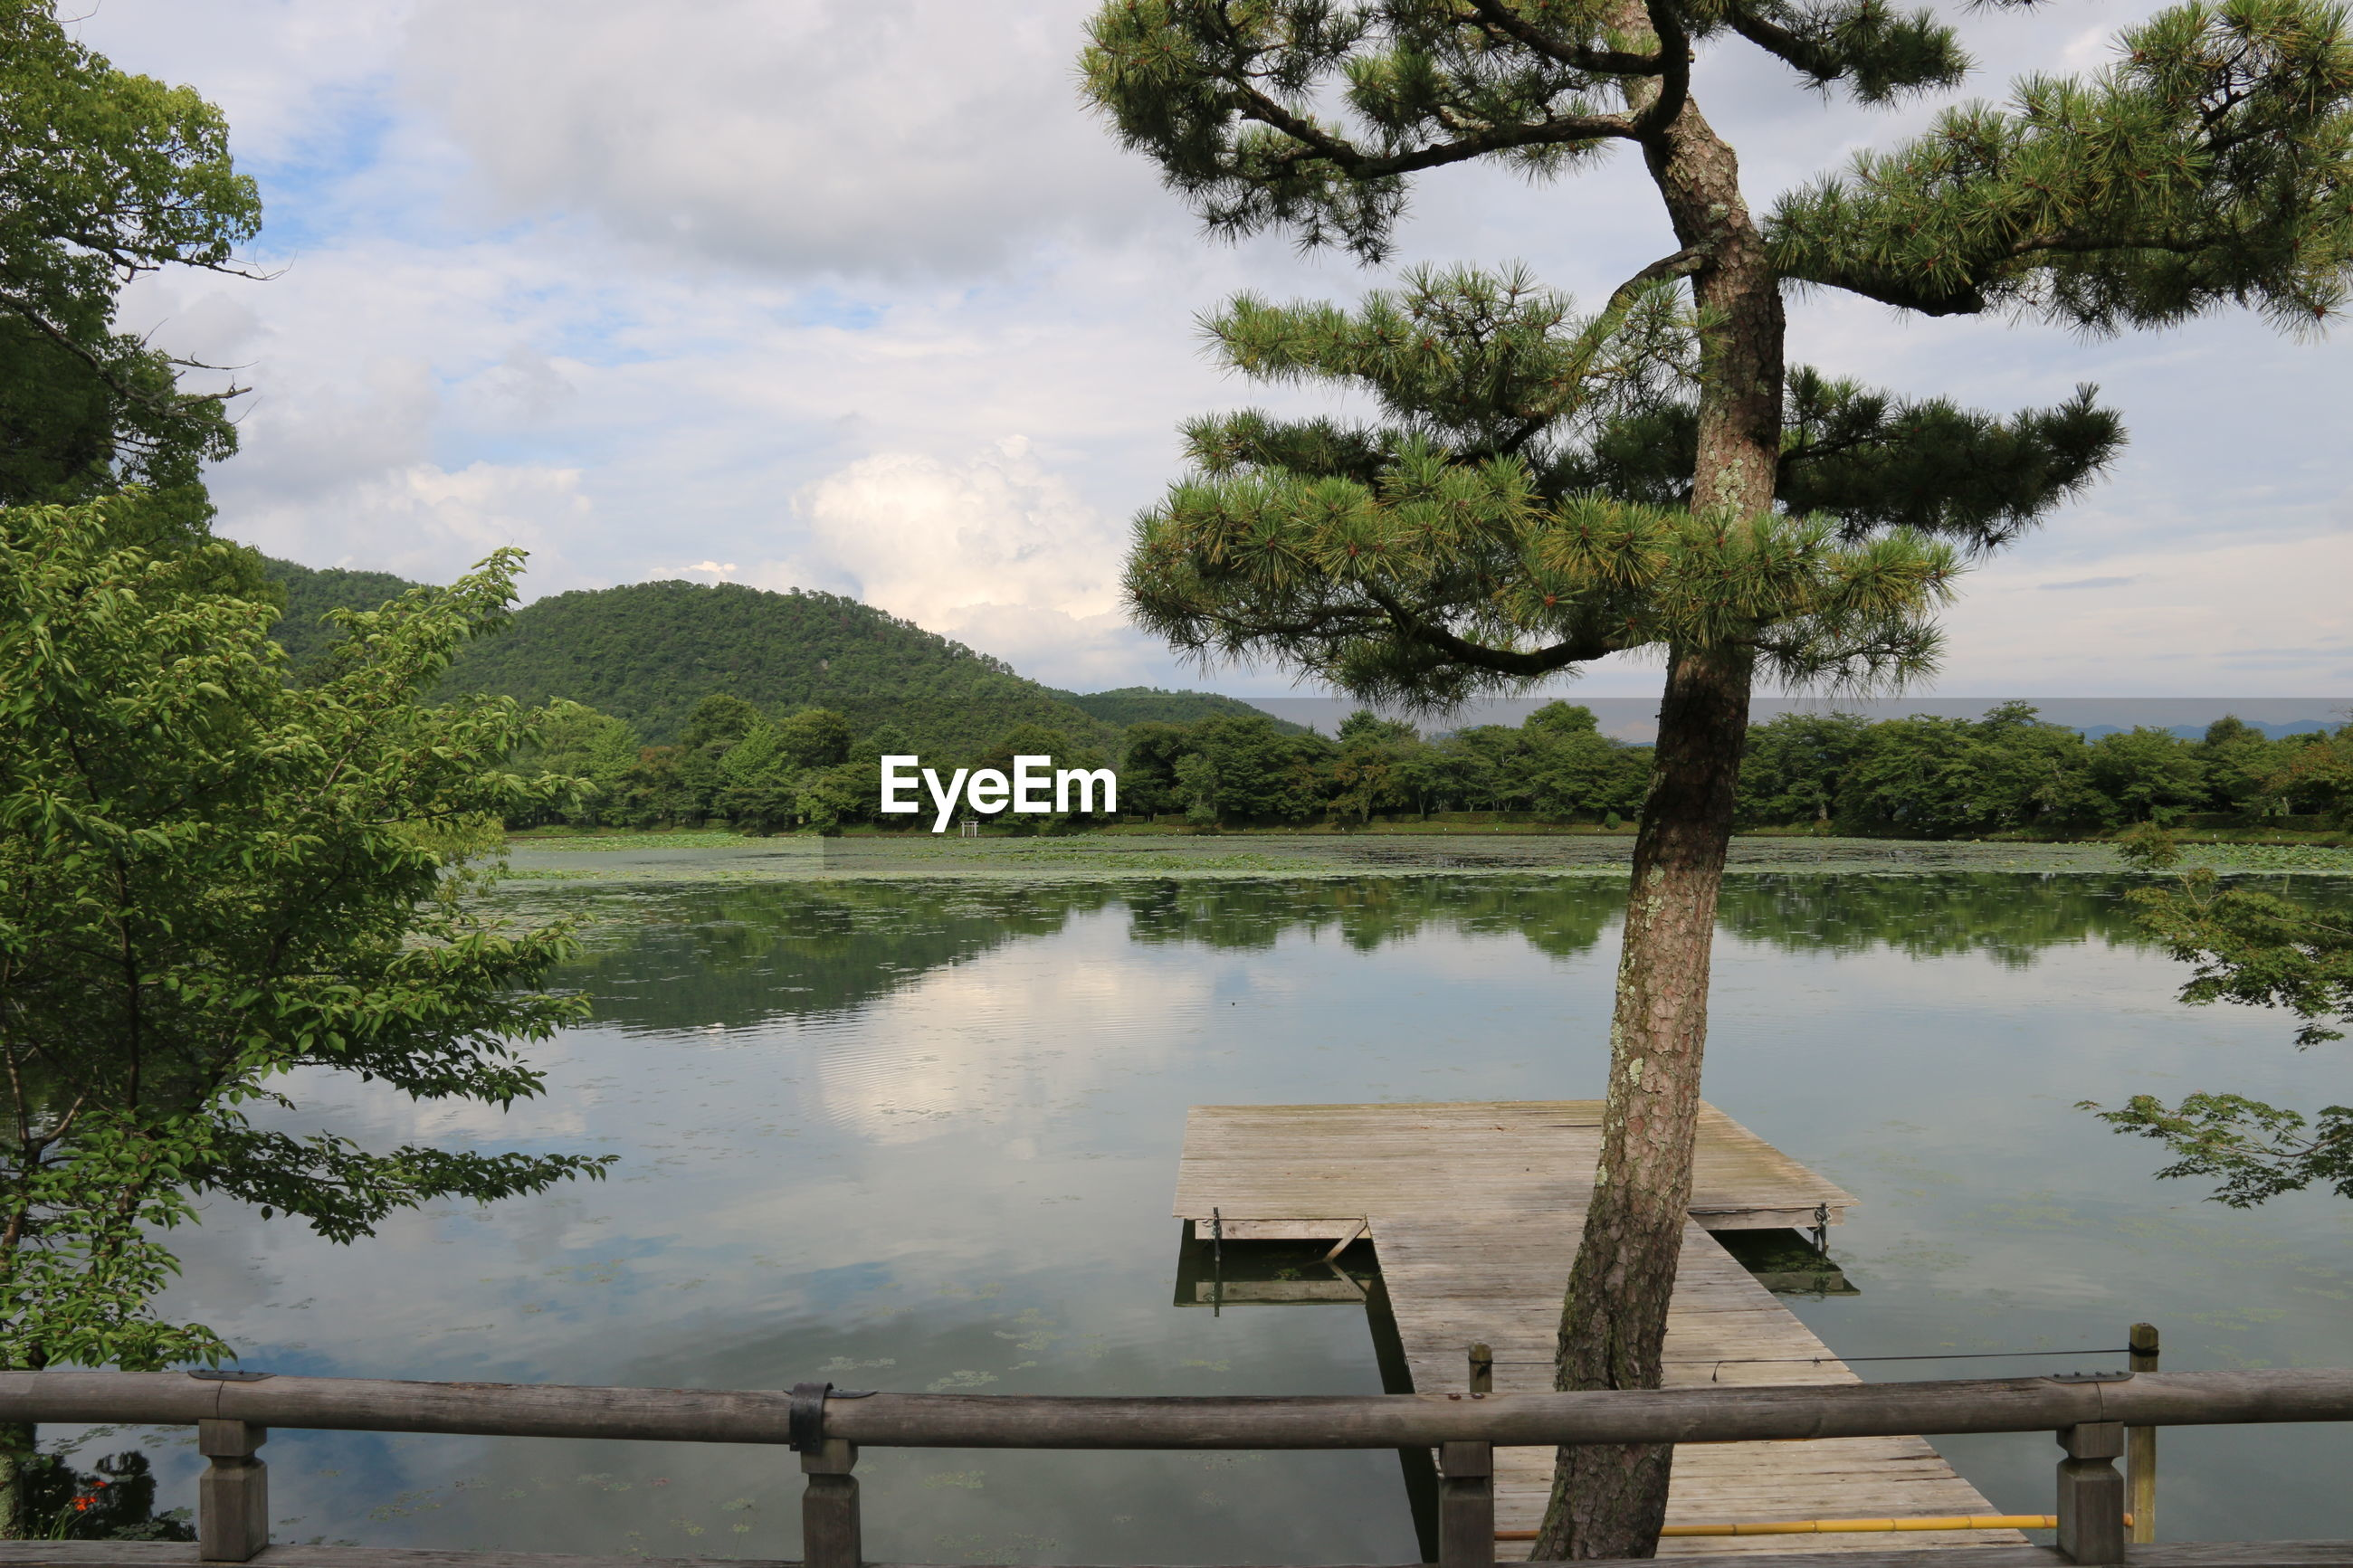 Lake with jetty and trees against cloudy sky